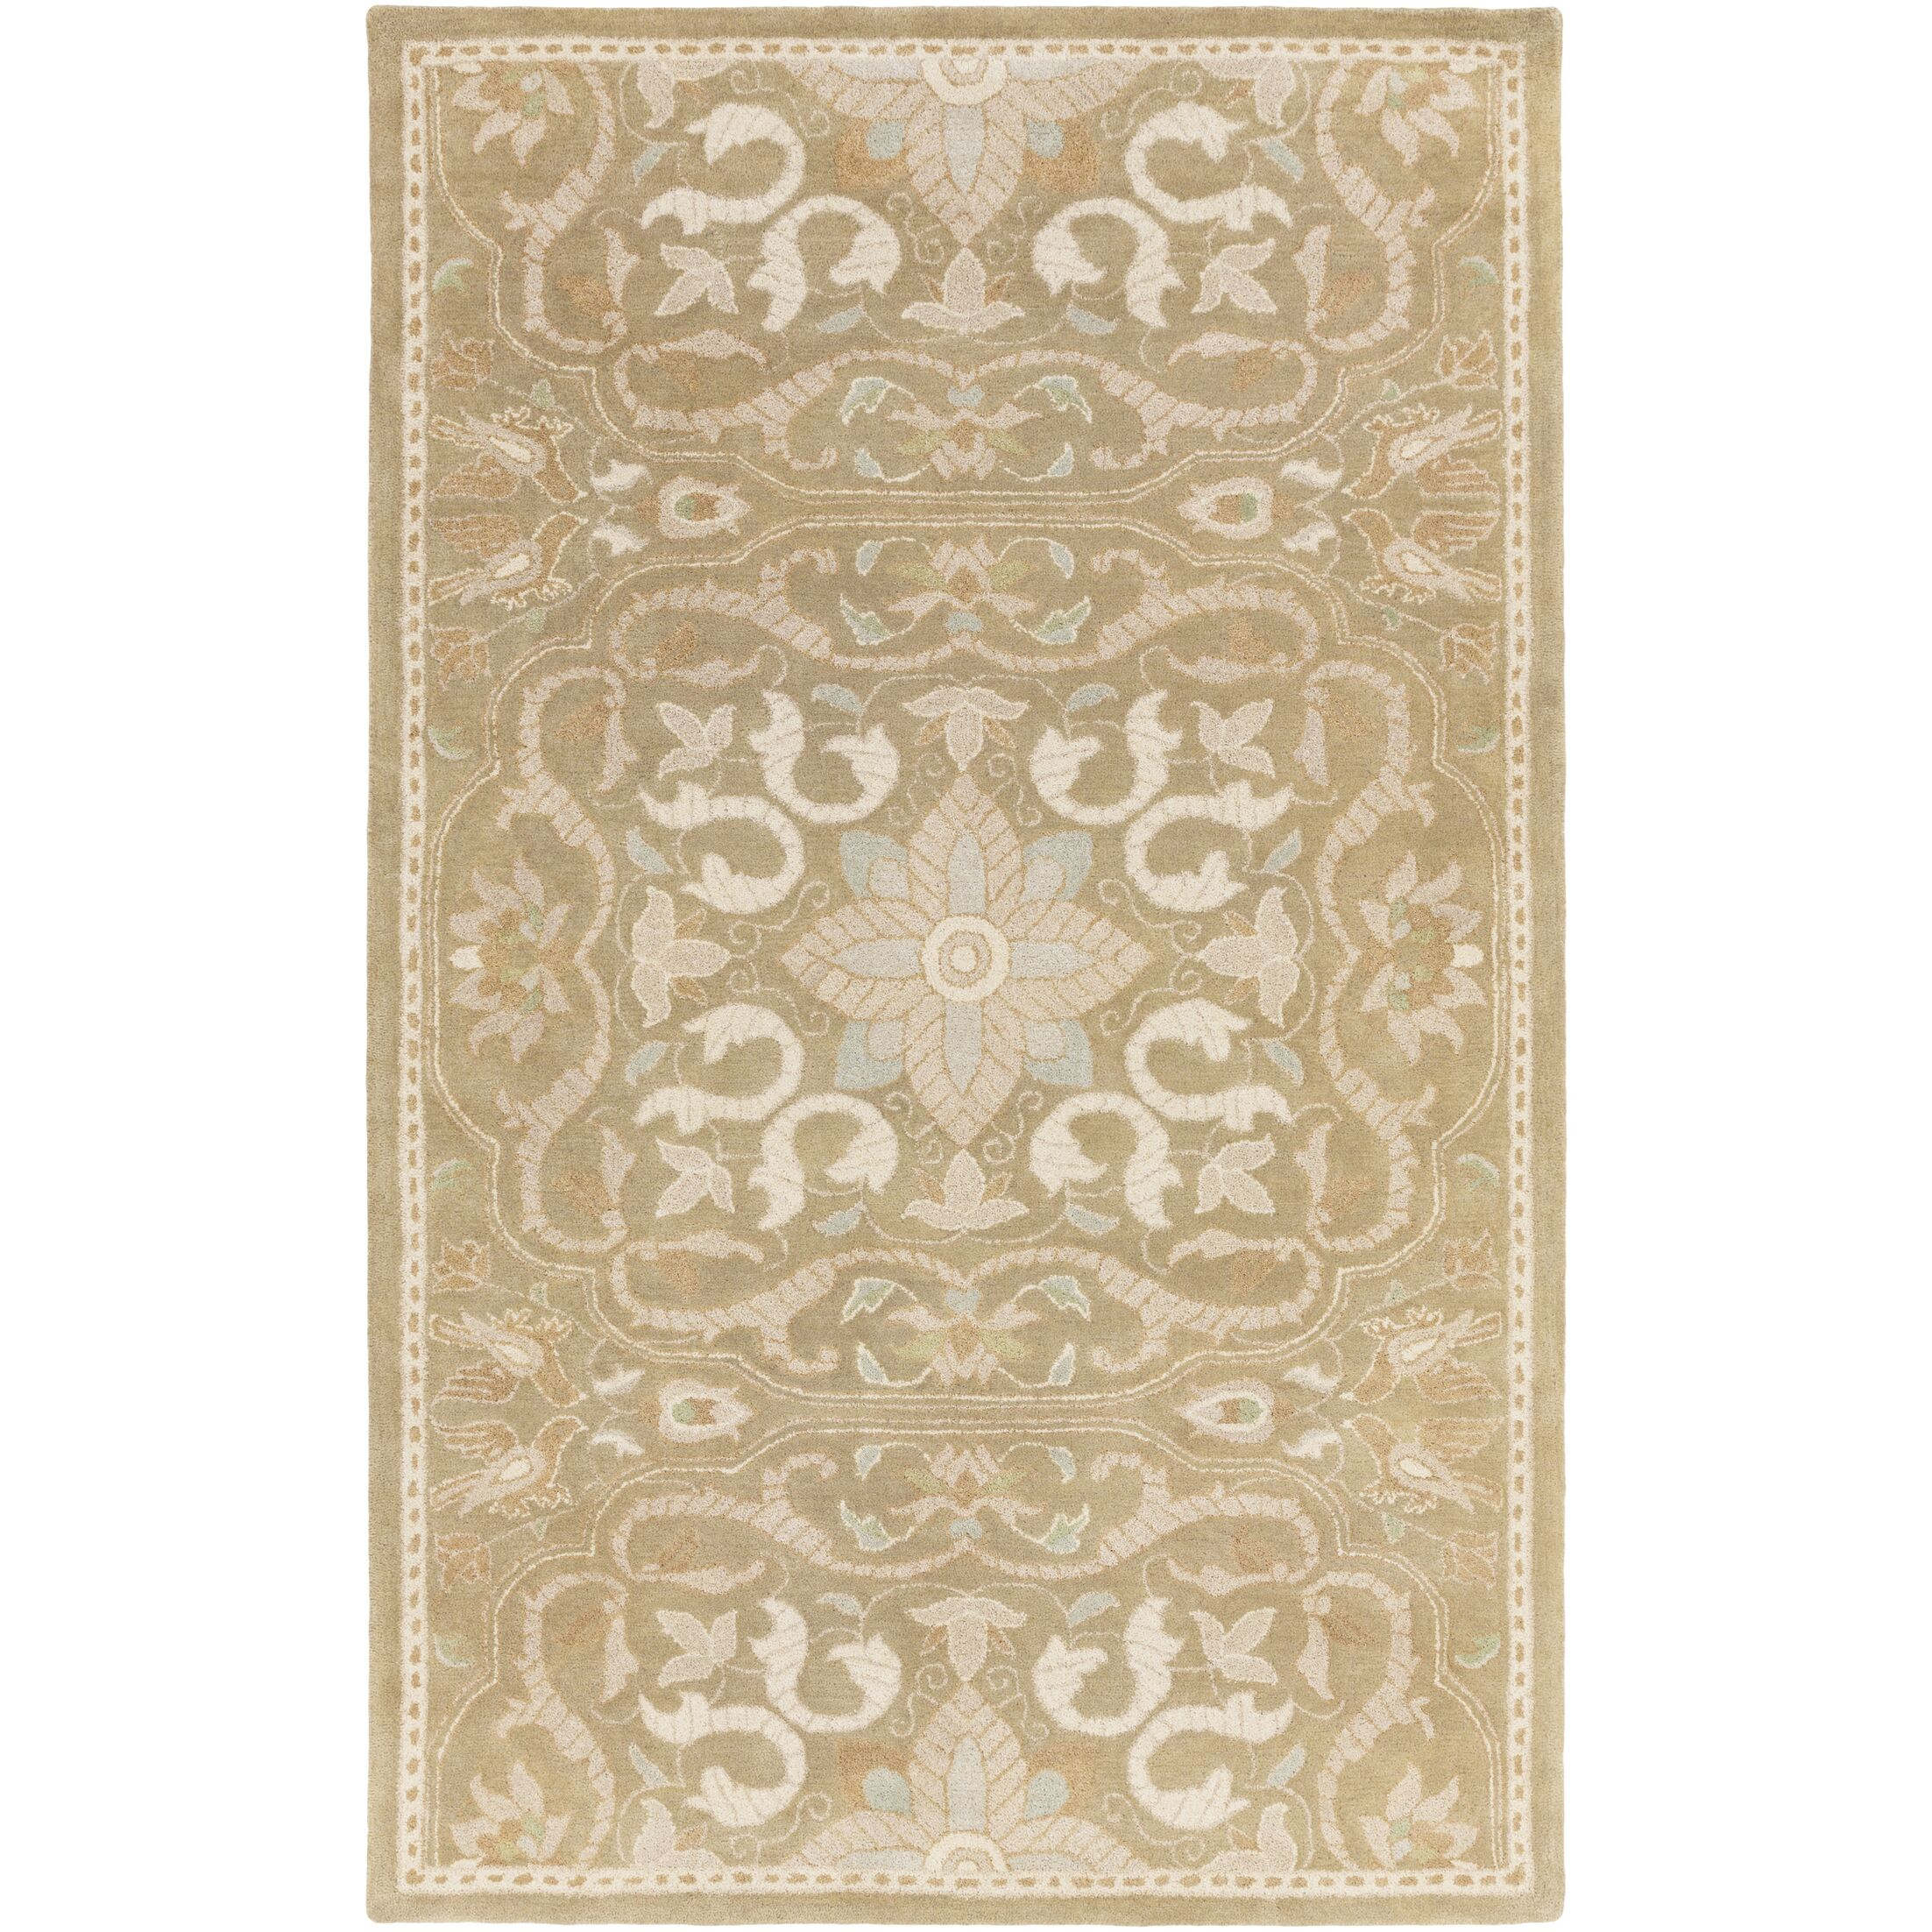 Smithsonian Hand-Tufted Brown/Neutral Area Rug Rug Size: Rectangle 2' x 3'